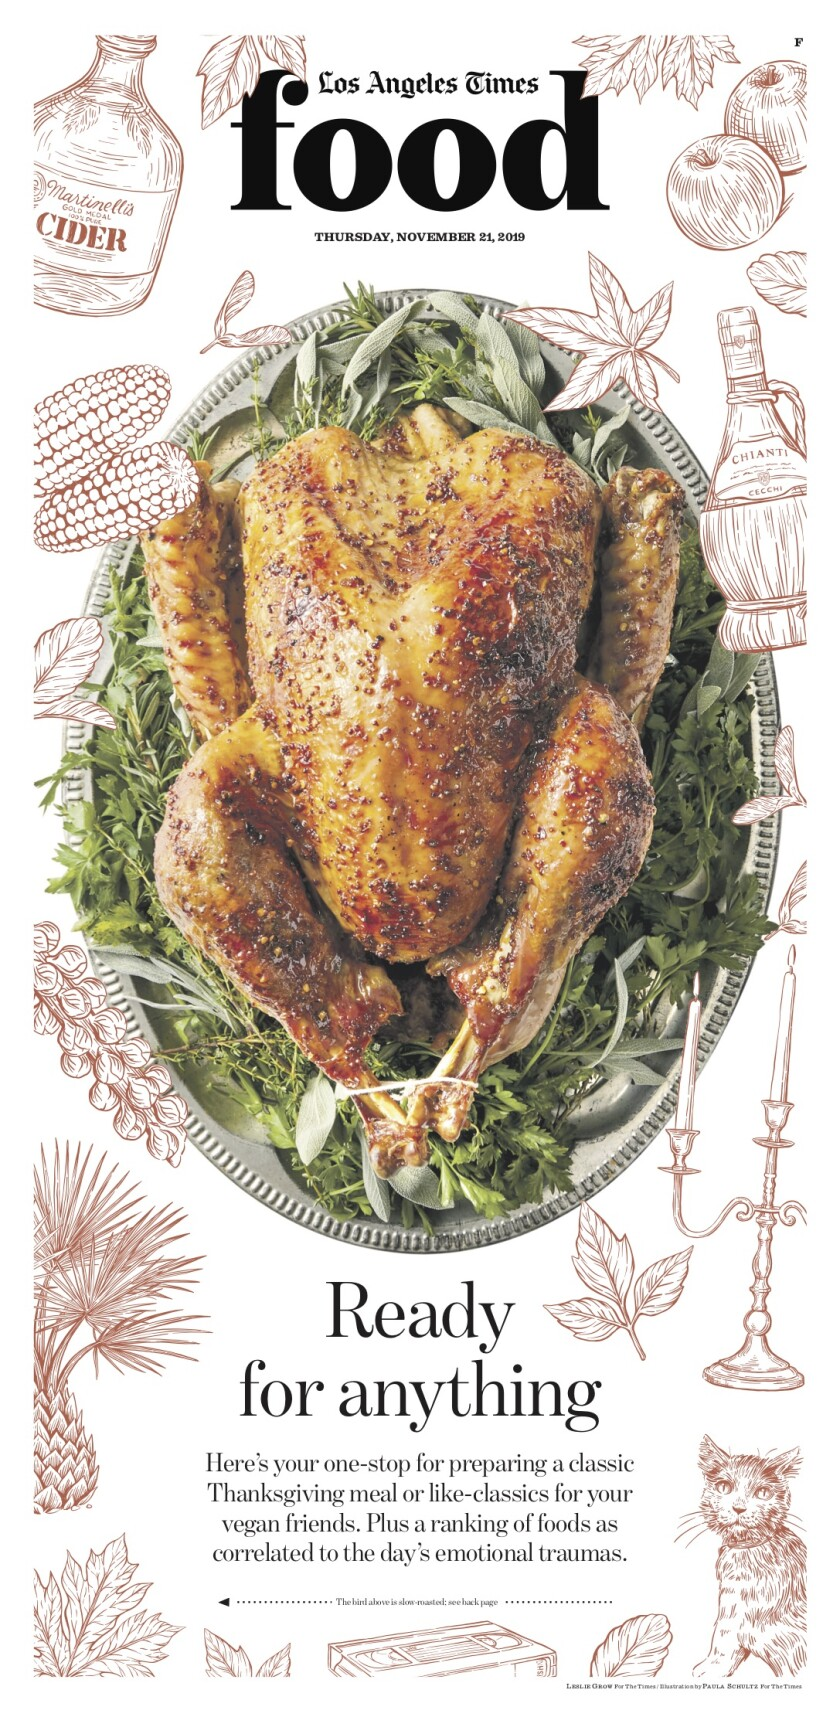 Los Angeles Times Food cover, November 21, 2019